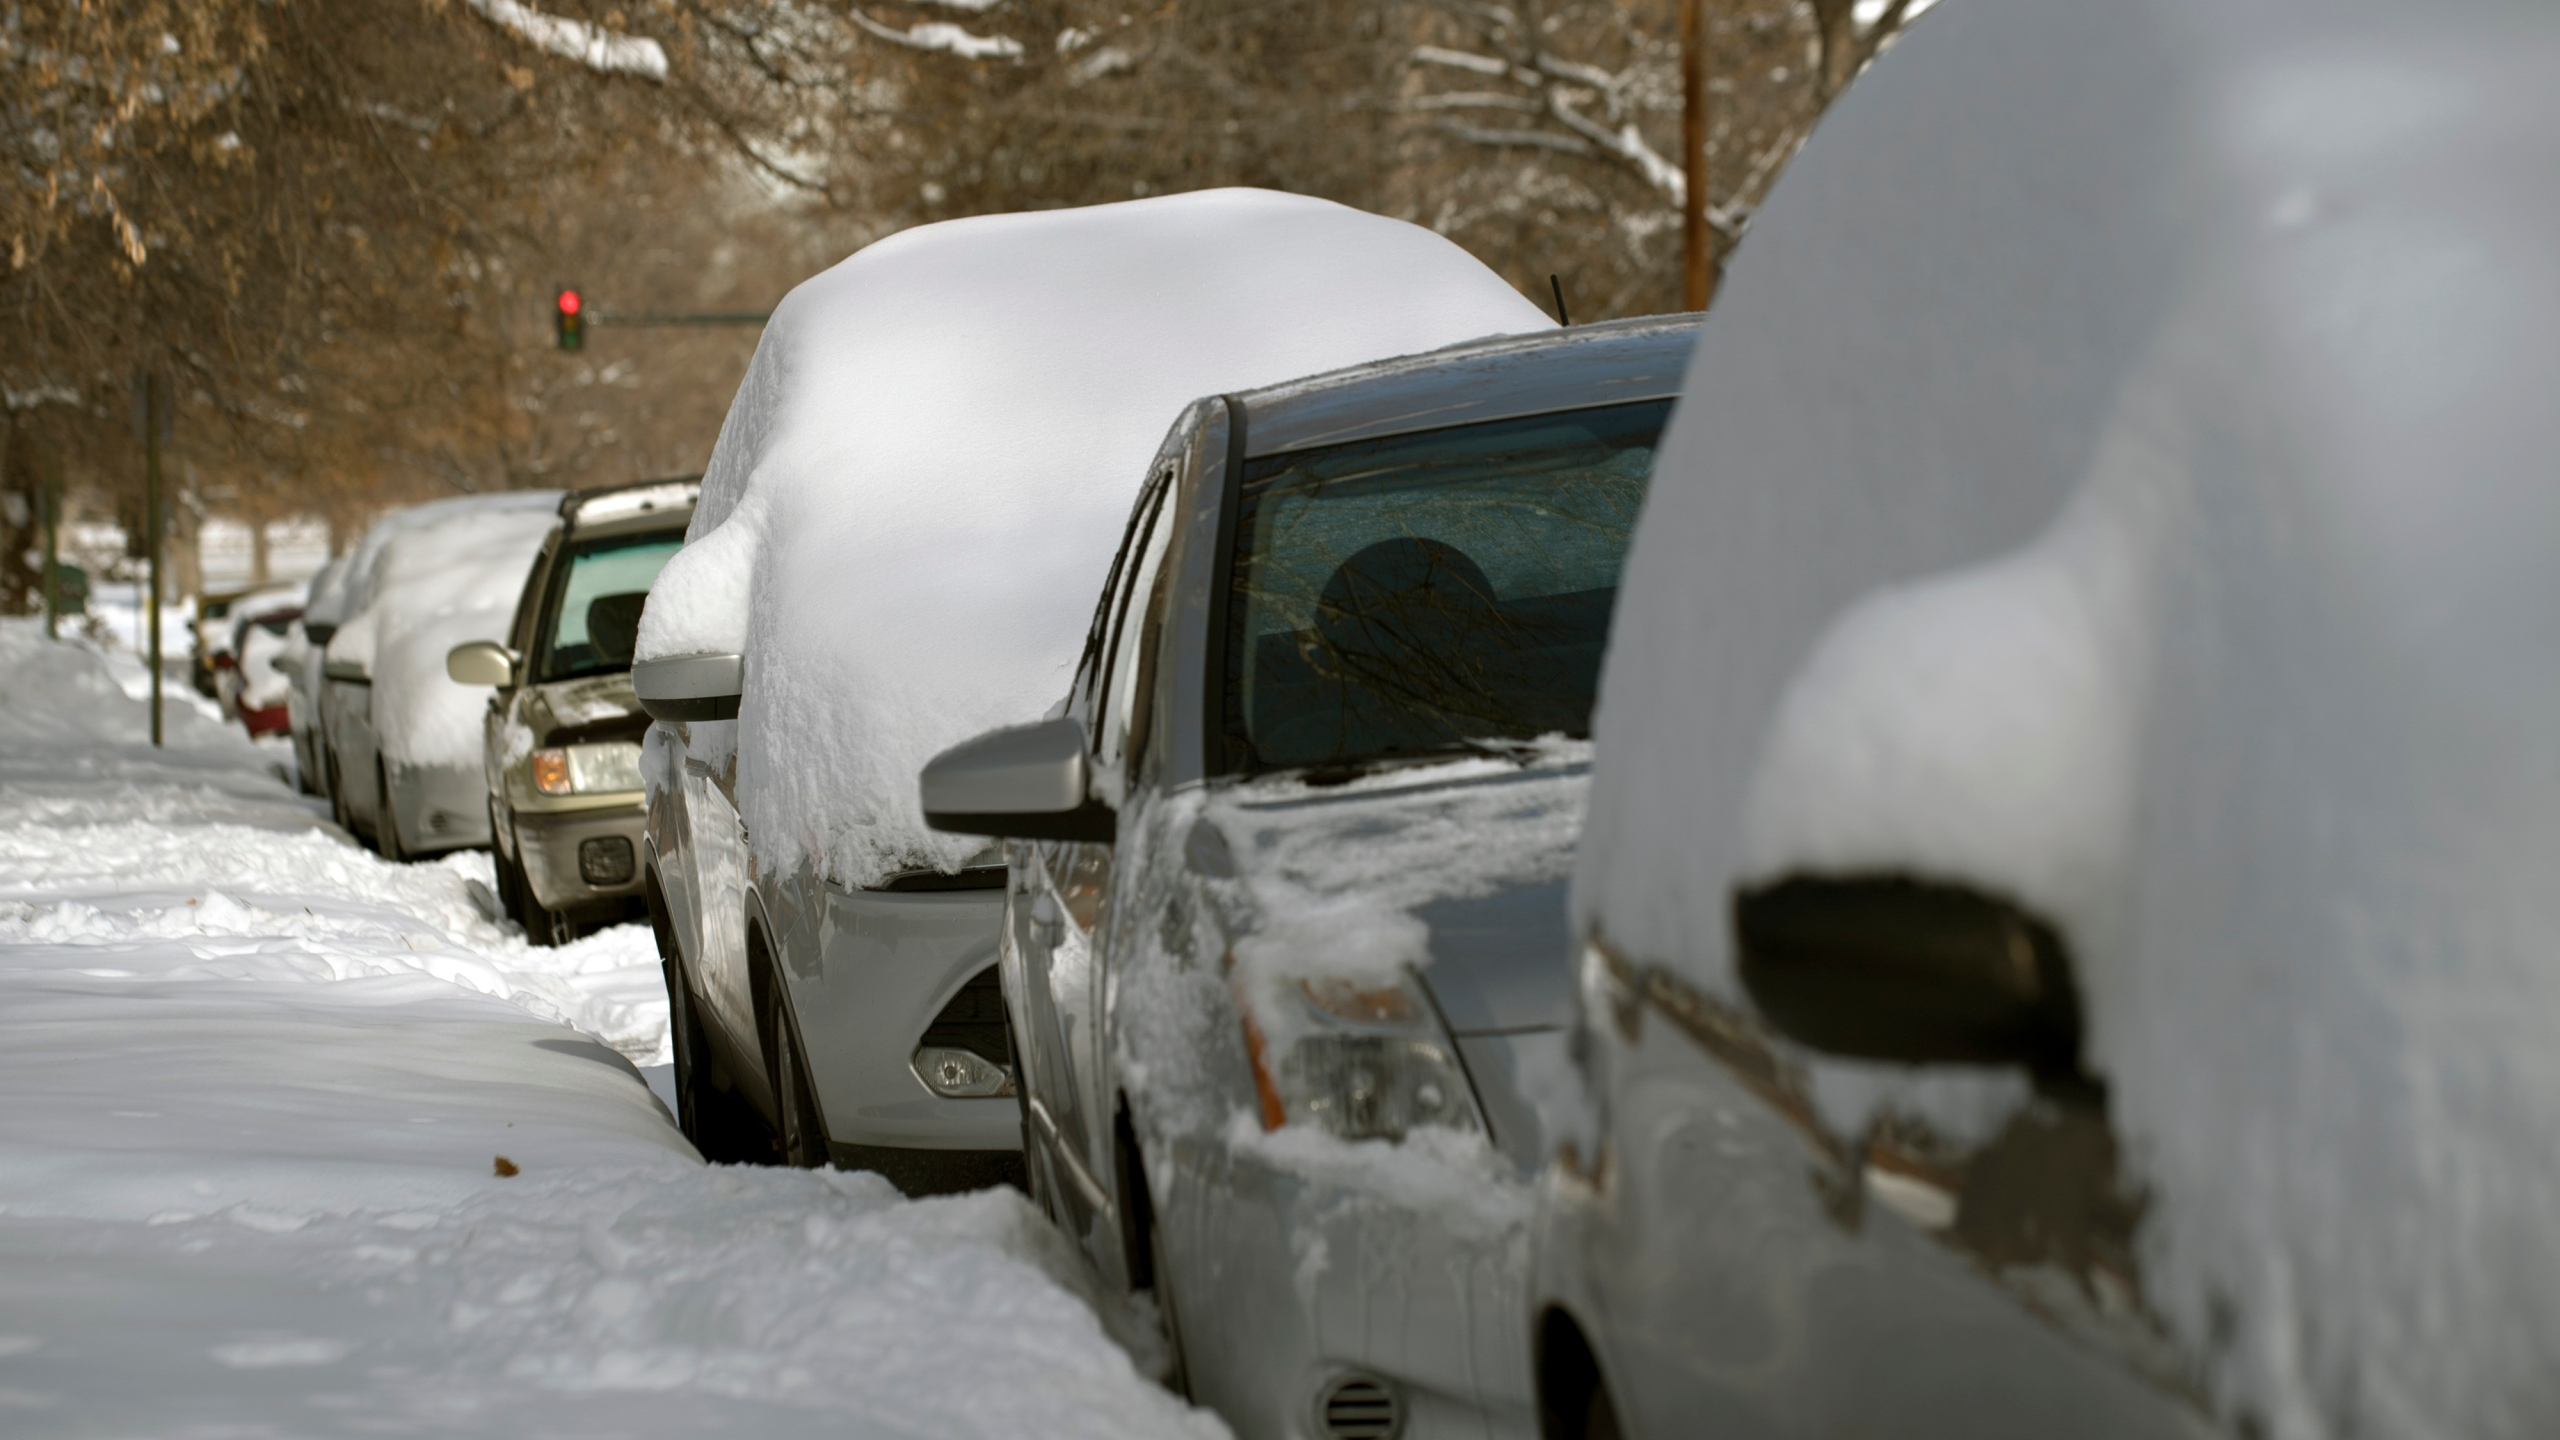 Cars lie buried under fresh snow in Denver, Colo. on Nov. 27, 2019. (Credit: JASON CONNOLLY/AFP via Getty Images)